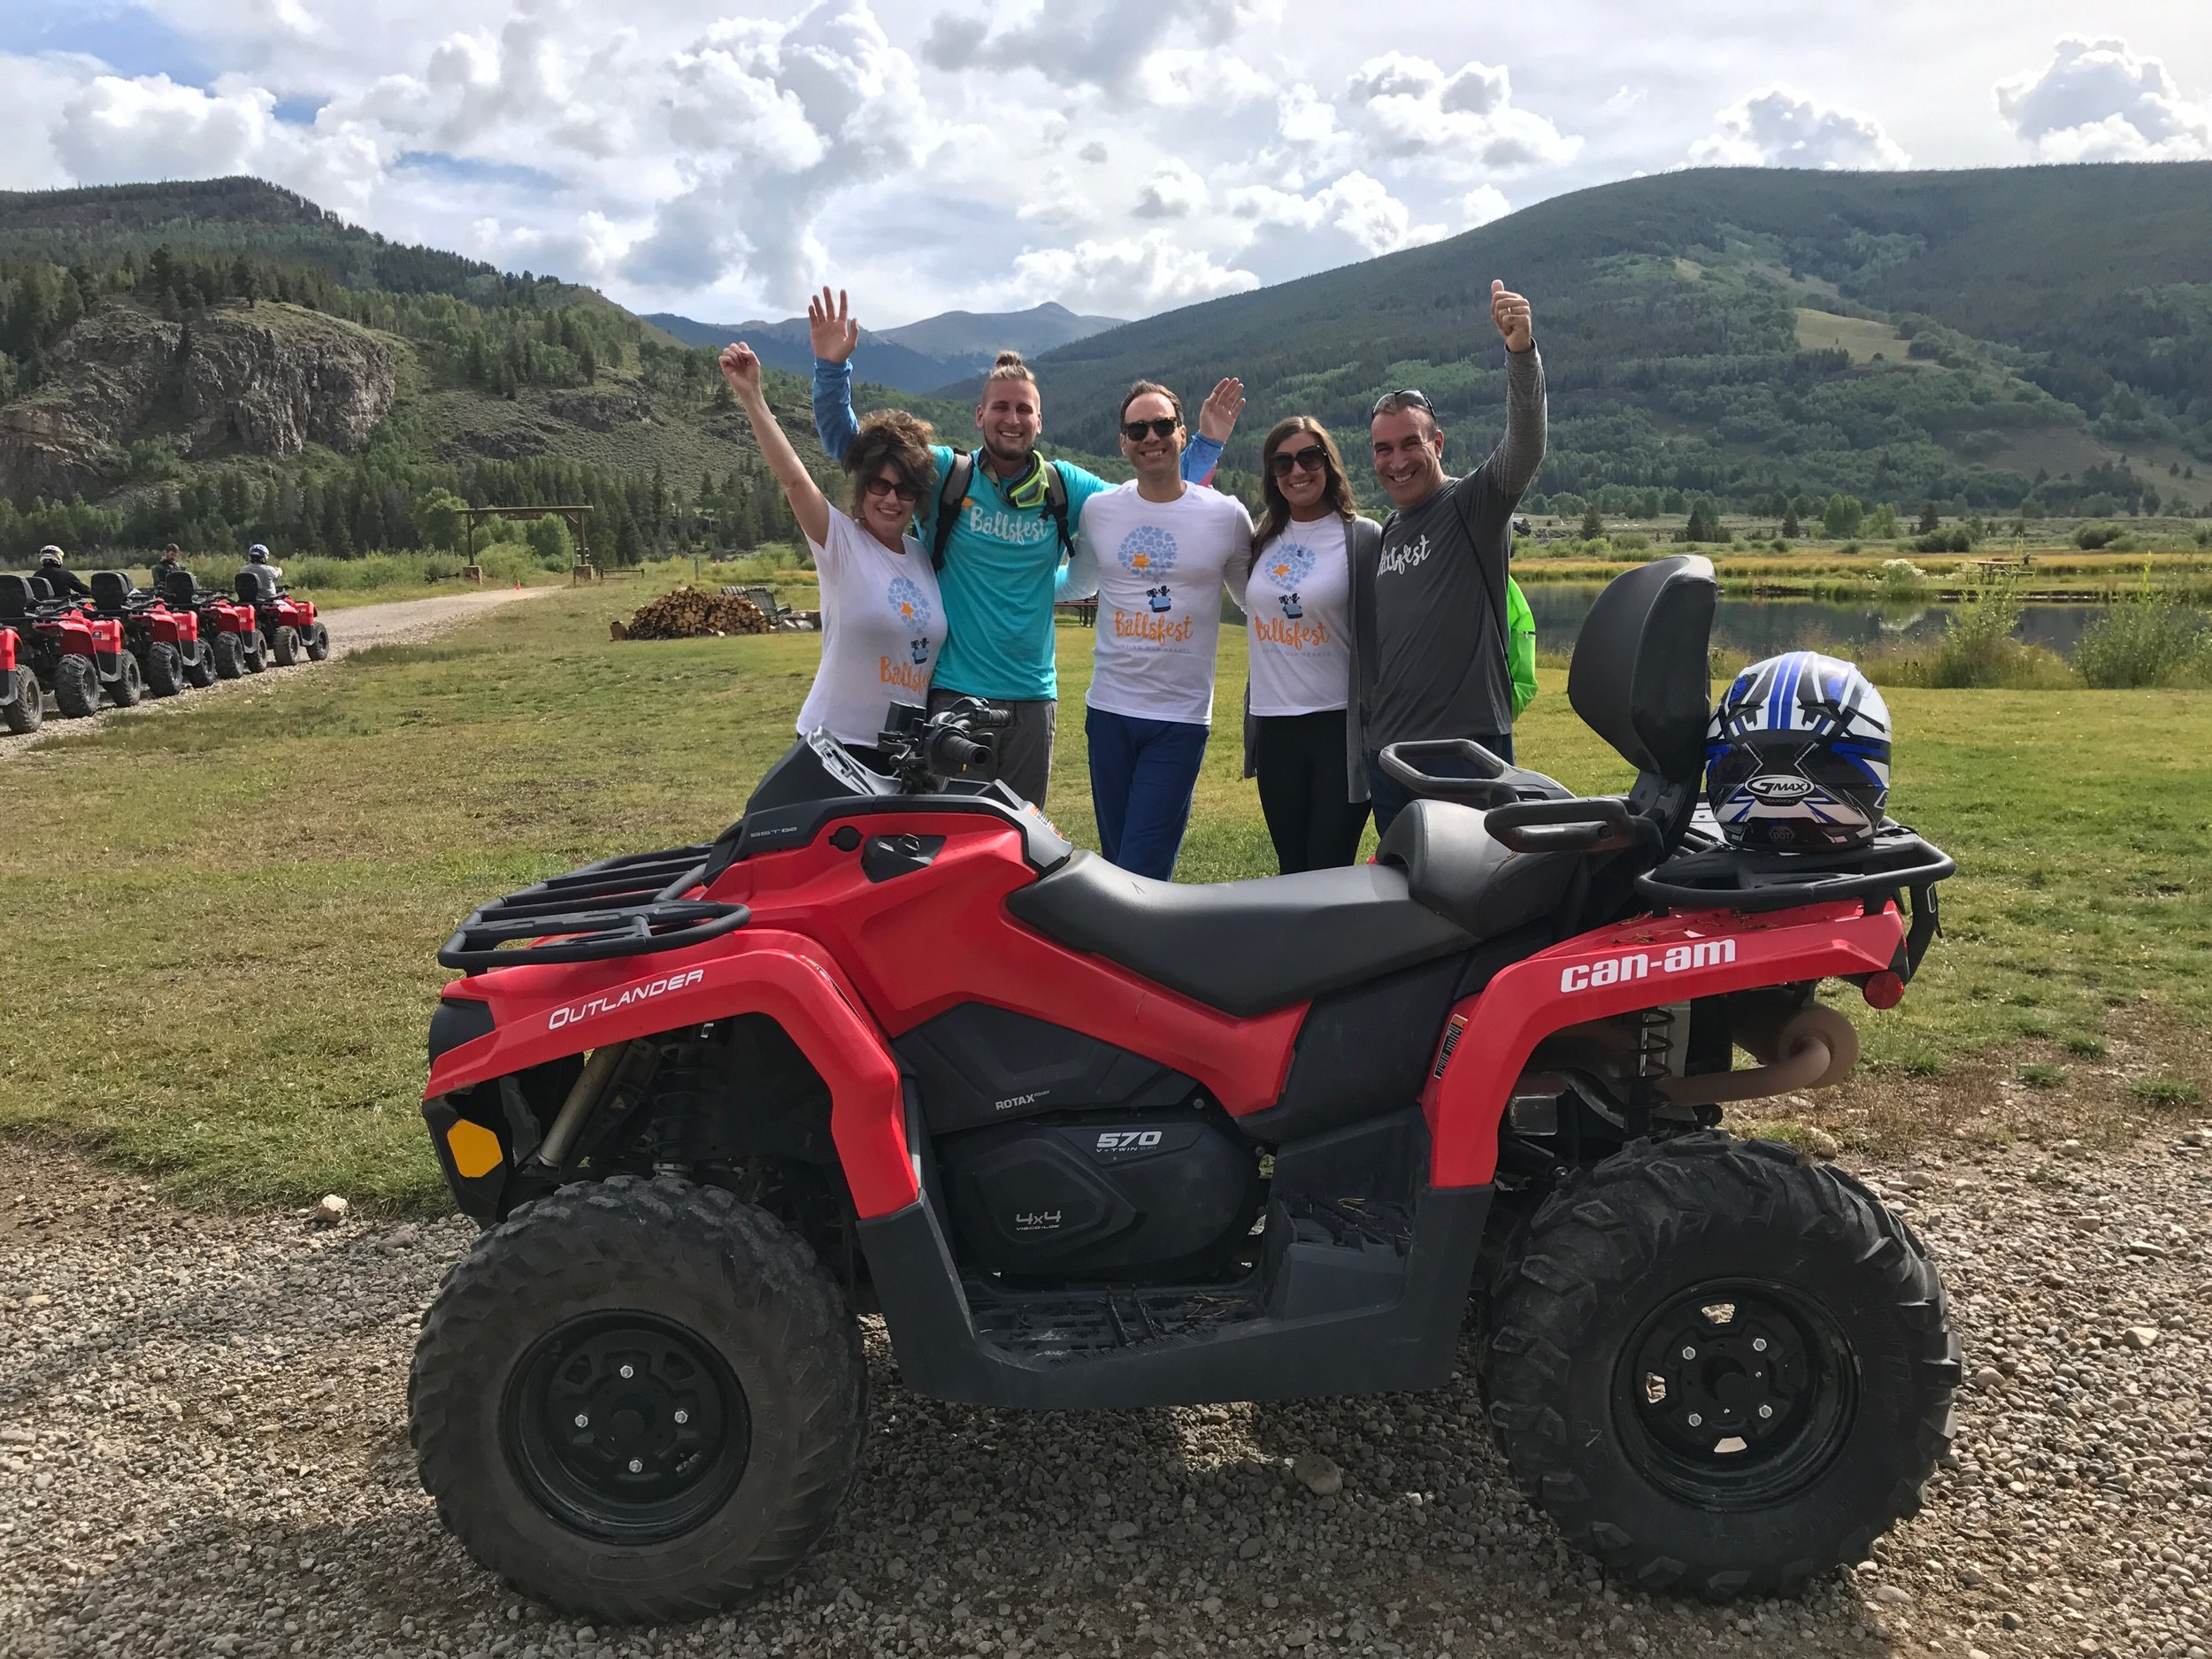 August, 24th 2017 - Frank, Dante and family riding in style in the Rockies!